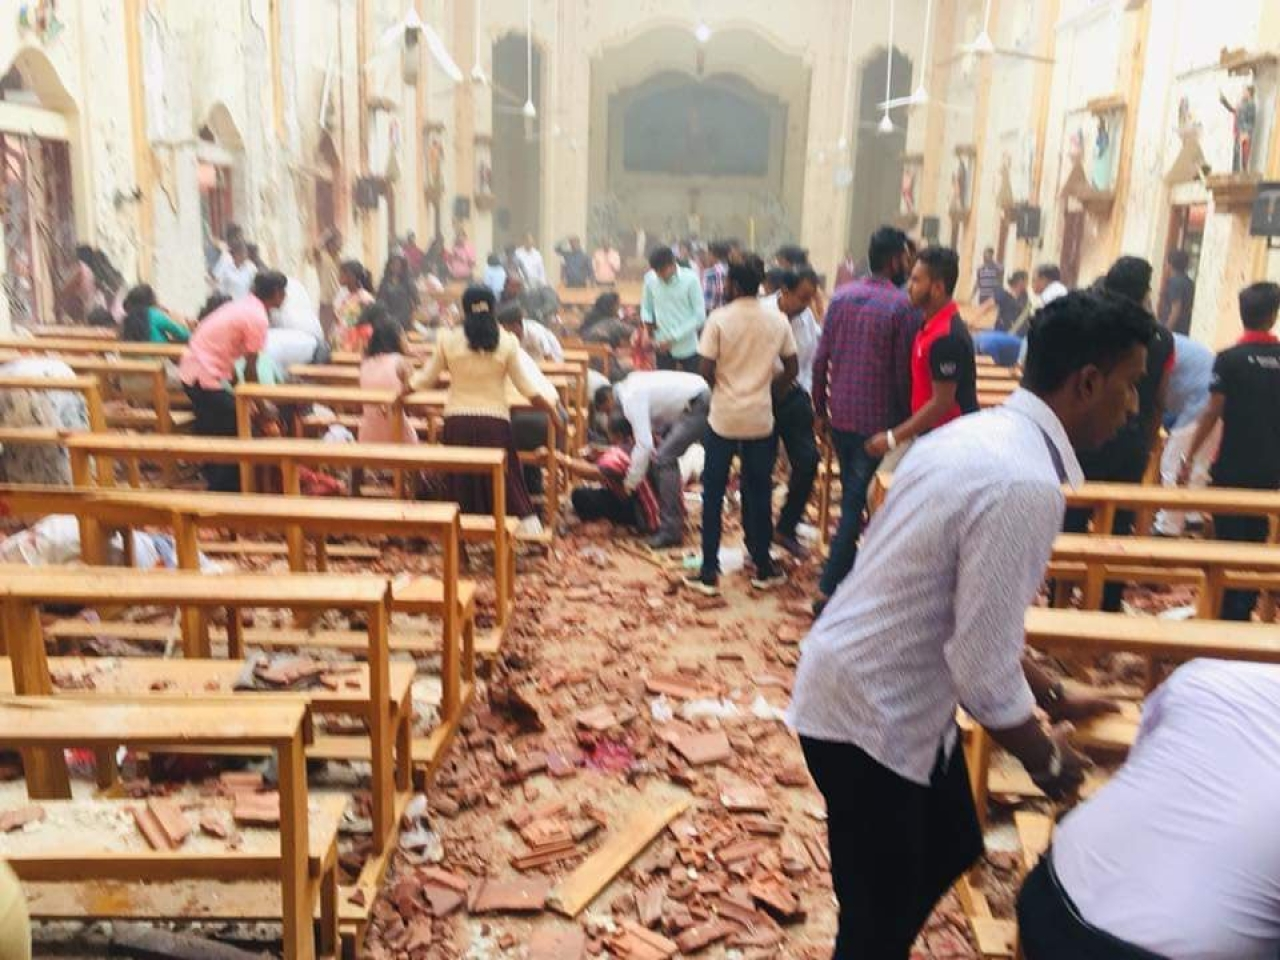 Catholic Churches In Sri Lanka Cancel Public Mass Until Security Situation Improves